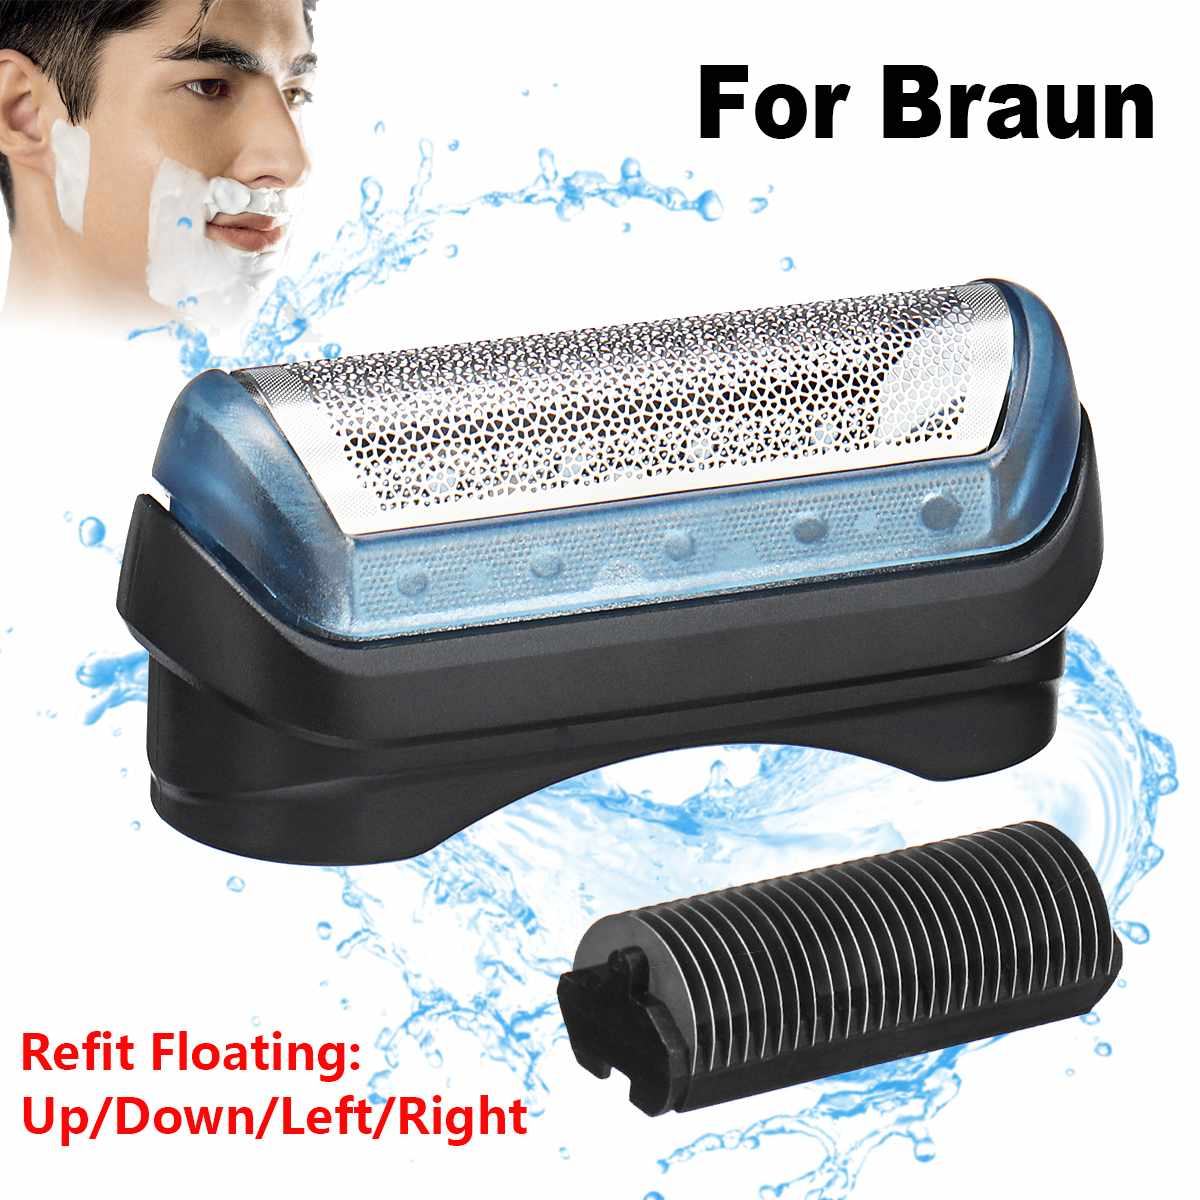 Refit Floating Shaver Foil for BRAUN 11B Series 5682/5683/5685 Bathroom Product Part Shaver Accessory Blade Replacement FoilRefit Floating Shaver Foil for BRAUN 11B Series 5682/5683/5685 Bathroom Product Part Shaver Accessory Blade Replacement Foil